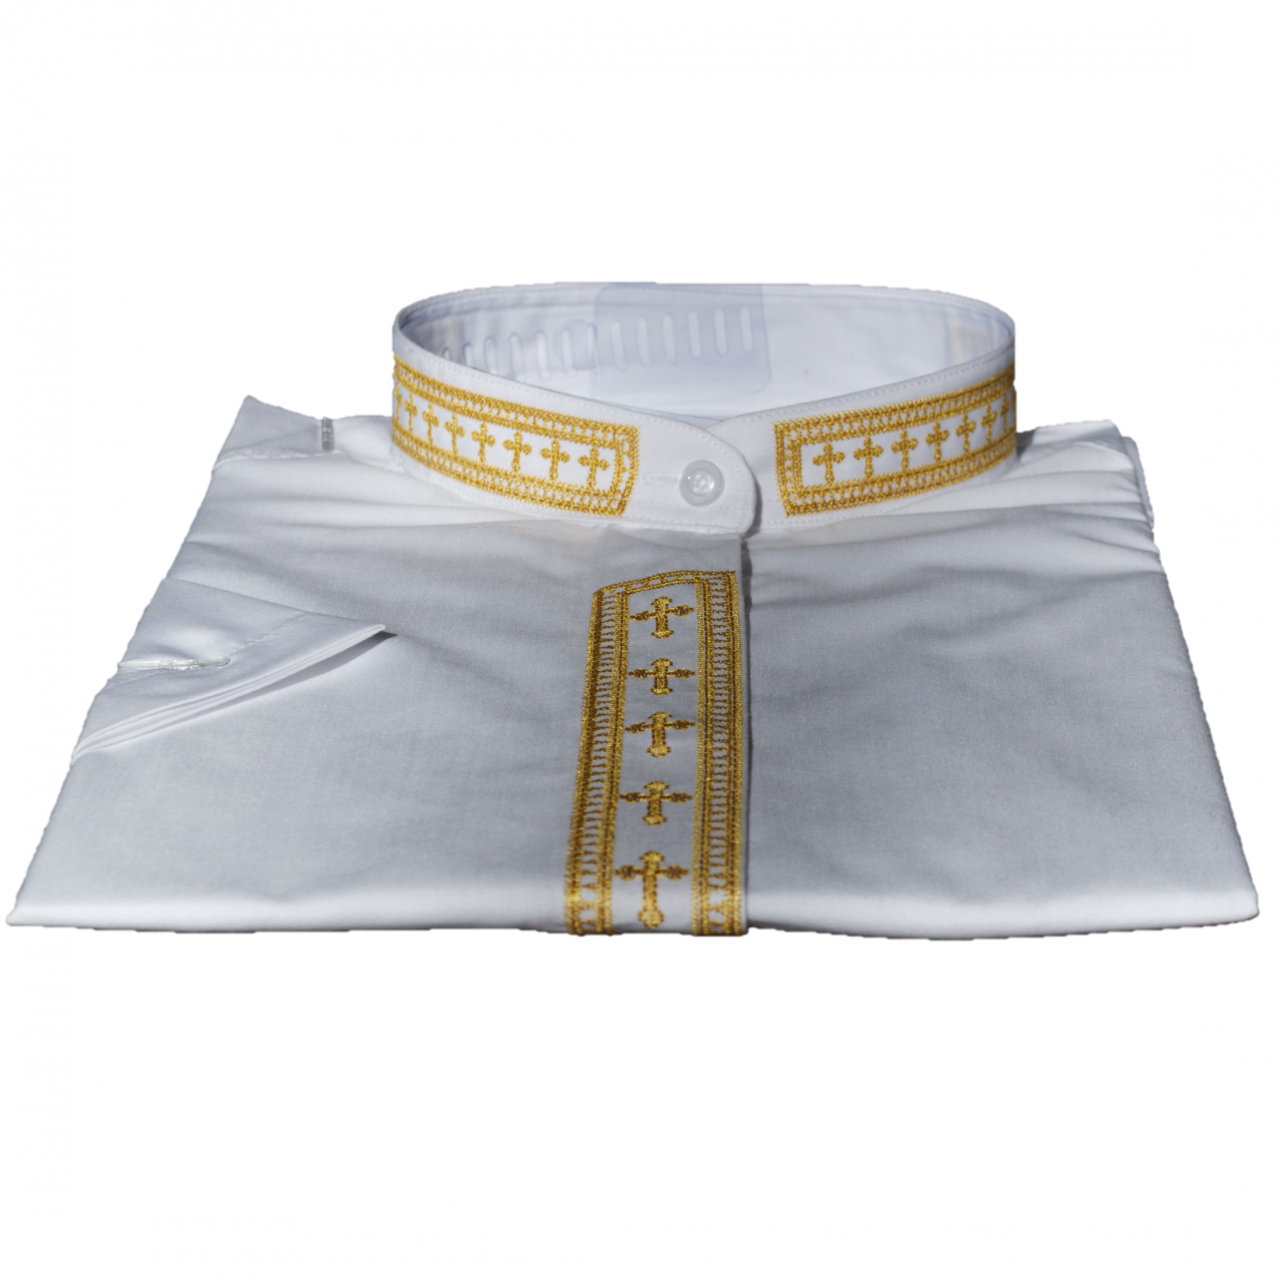 354. Men's Short-Sleeve Clergy Shirt With Fine Embroidery - White/Gold